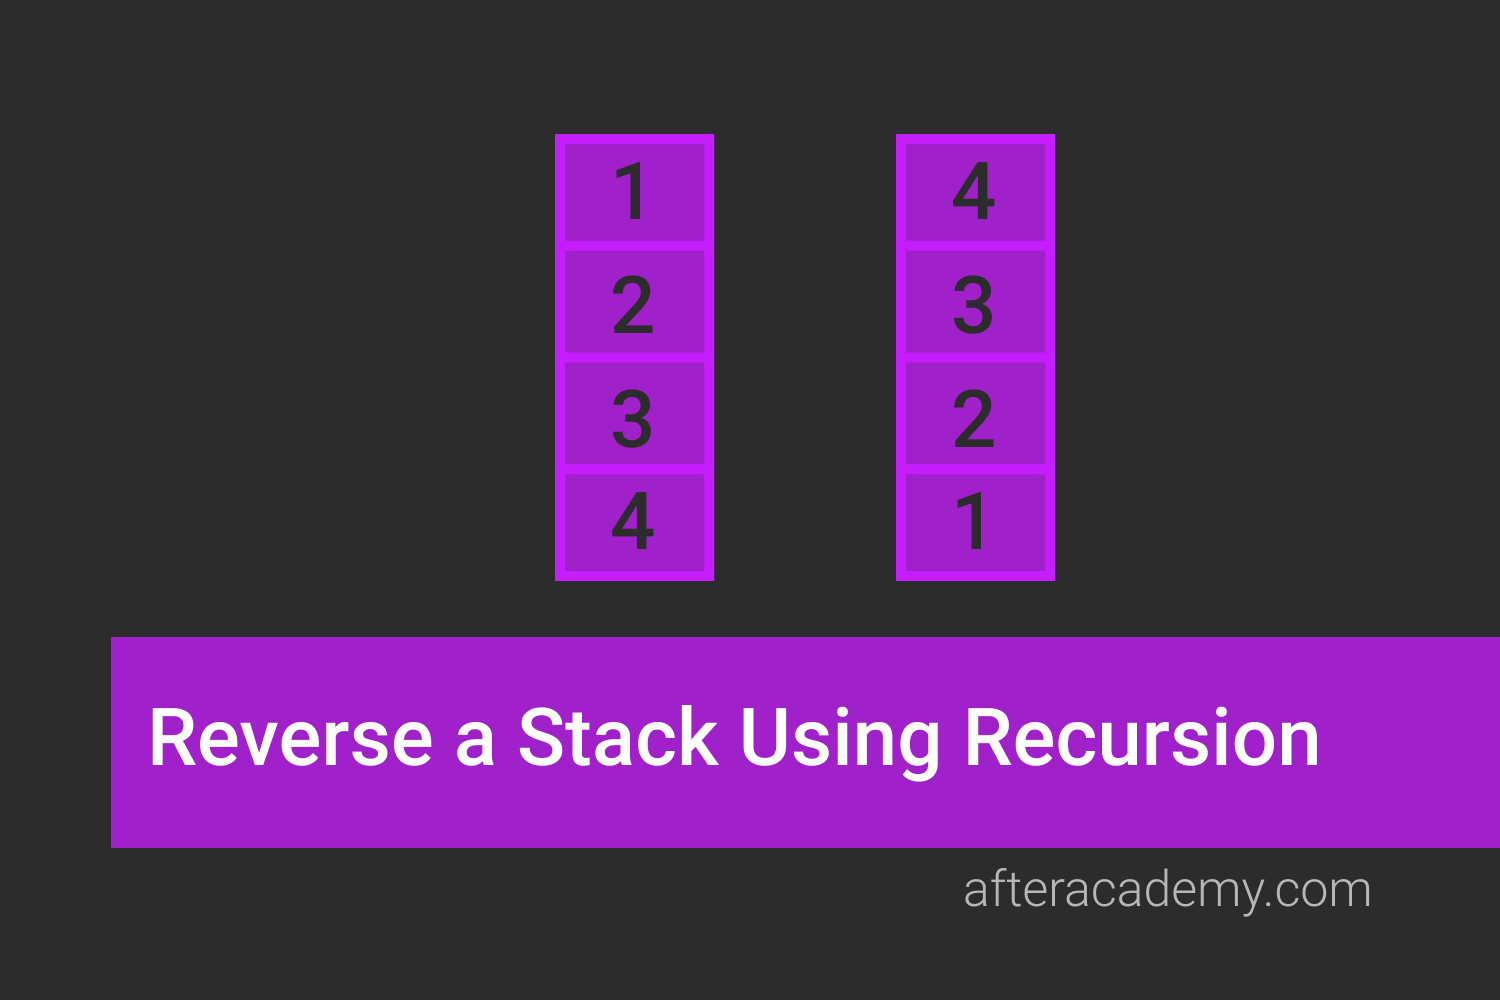 Reverse a Stack Using Recursion